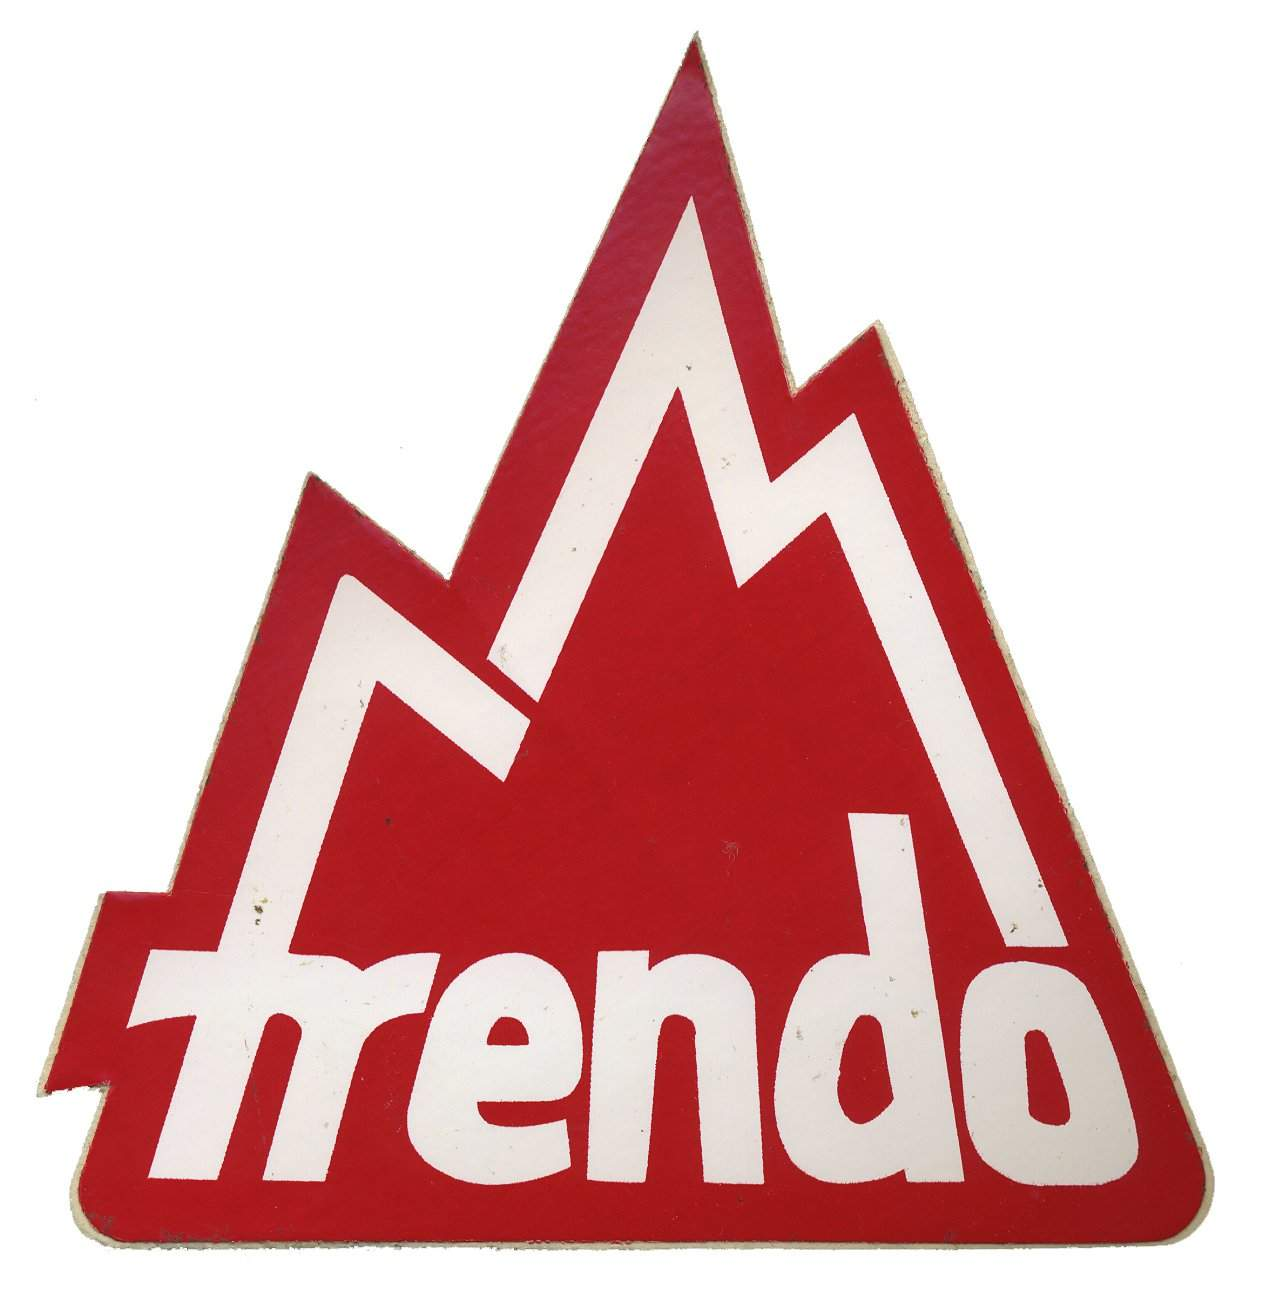 Frendo Vintage Racing Decal